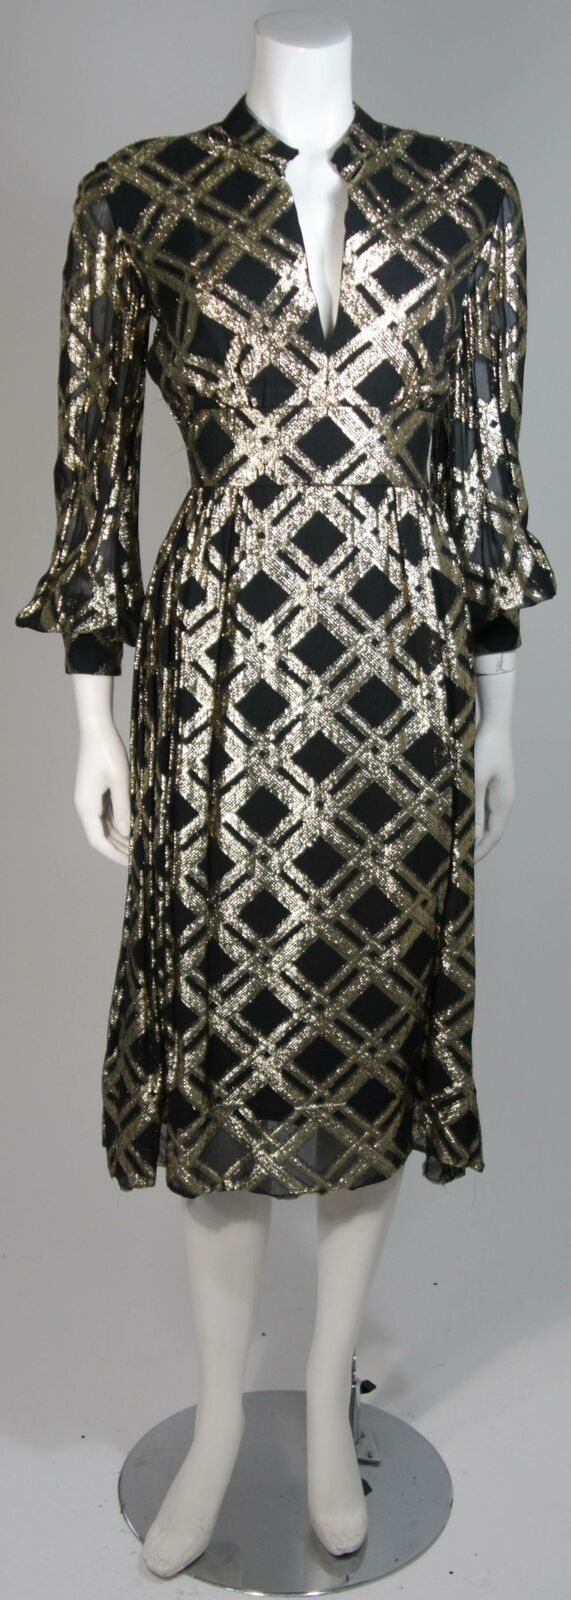 CEIL CHAPMAN Black Silk and Gold Cocktail Dress S… - image 2